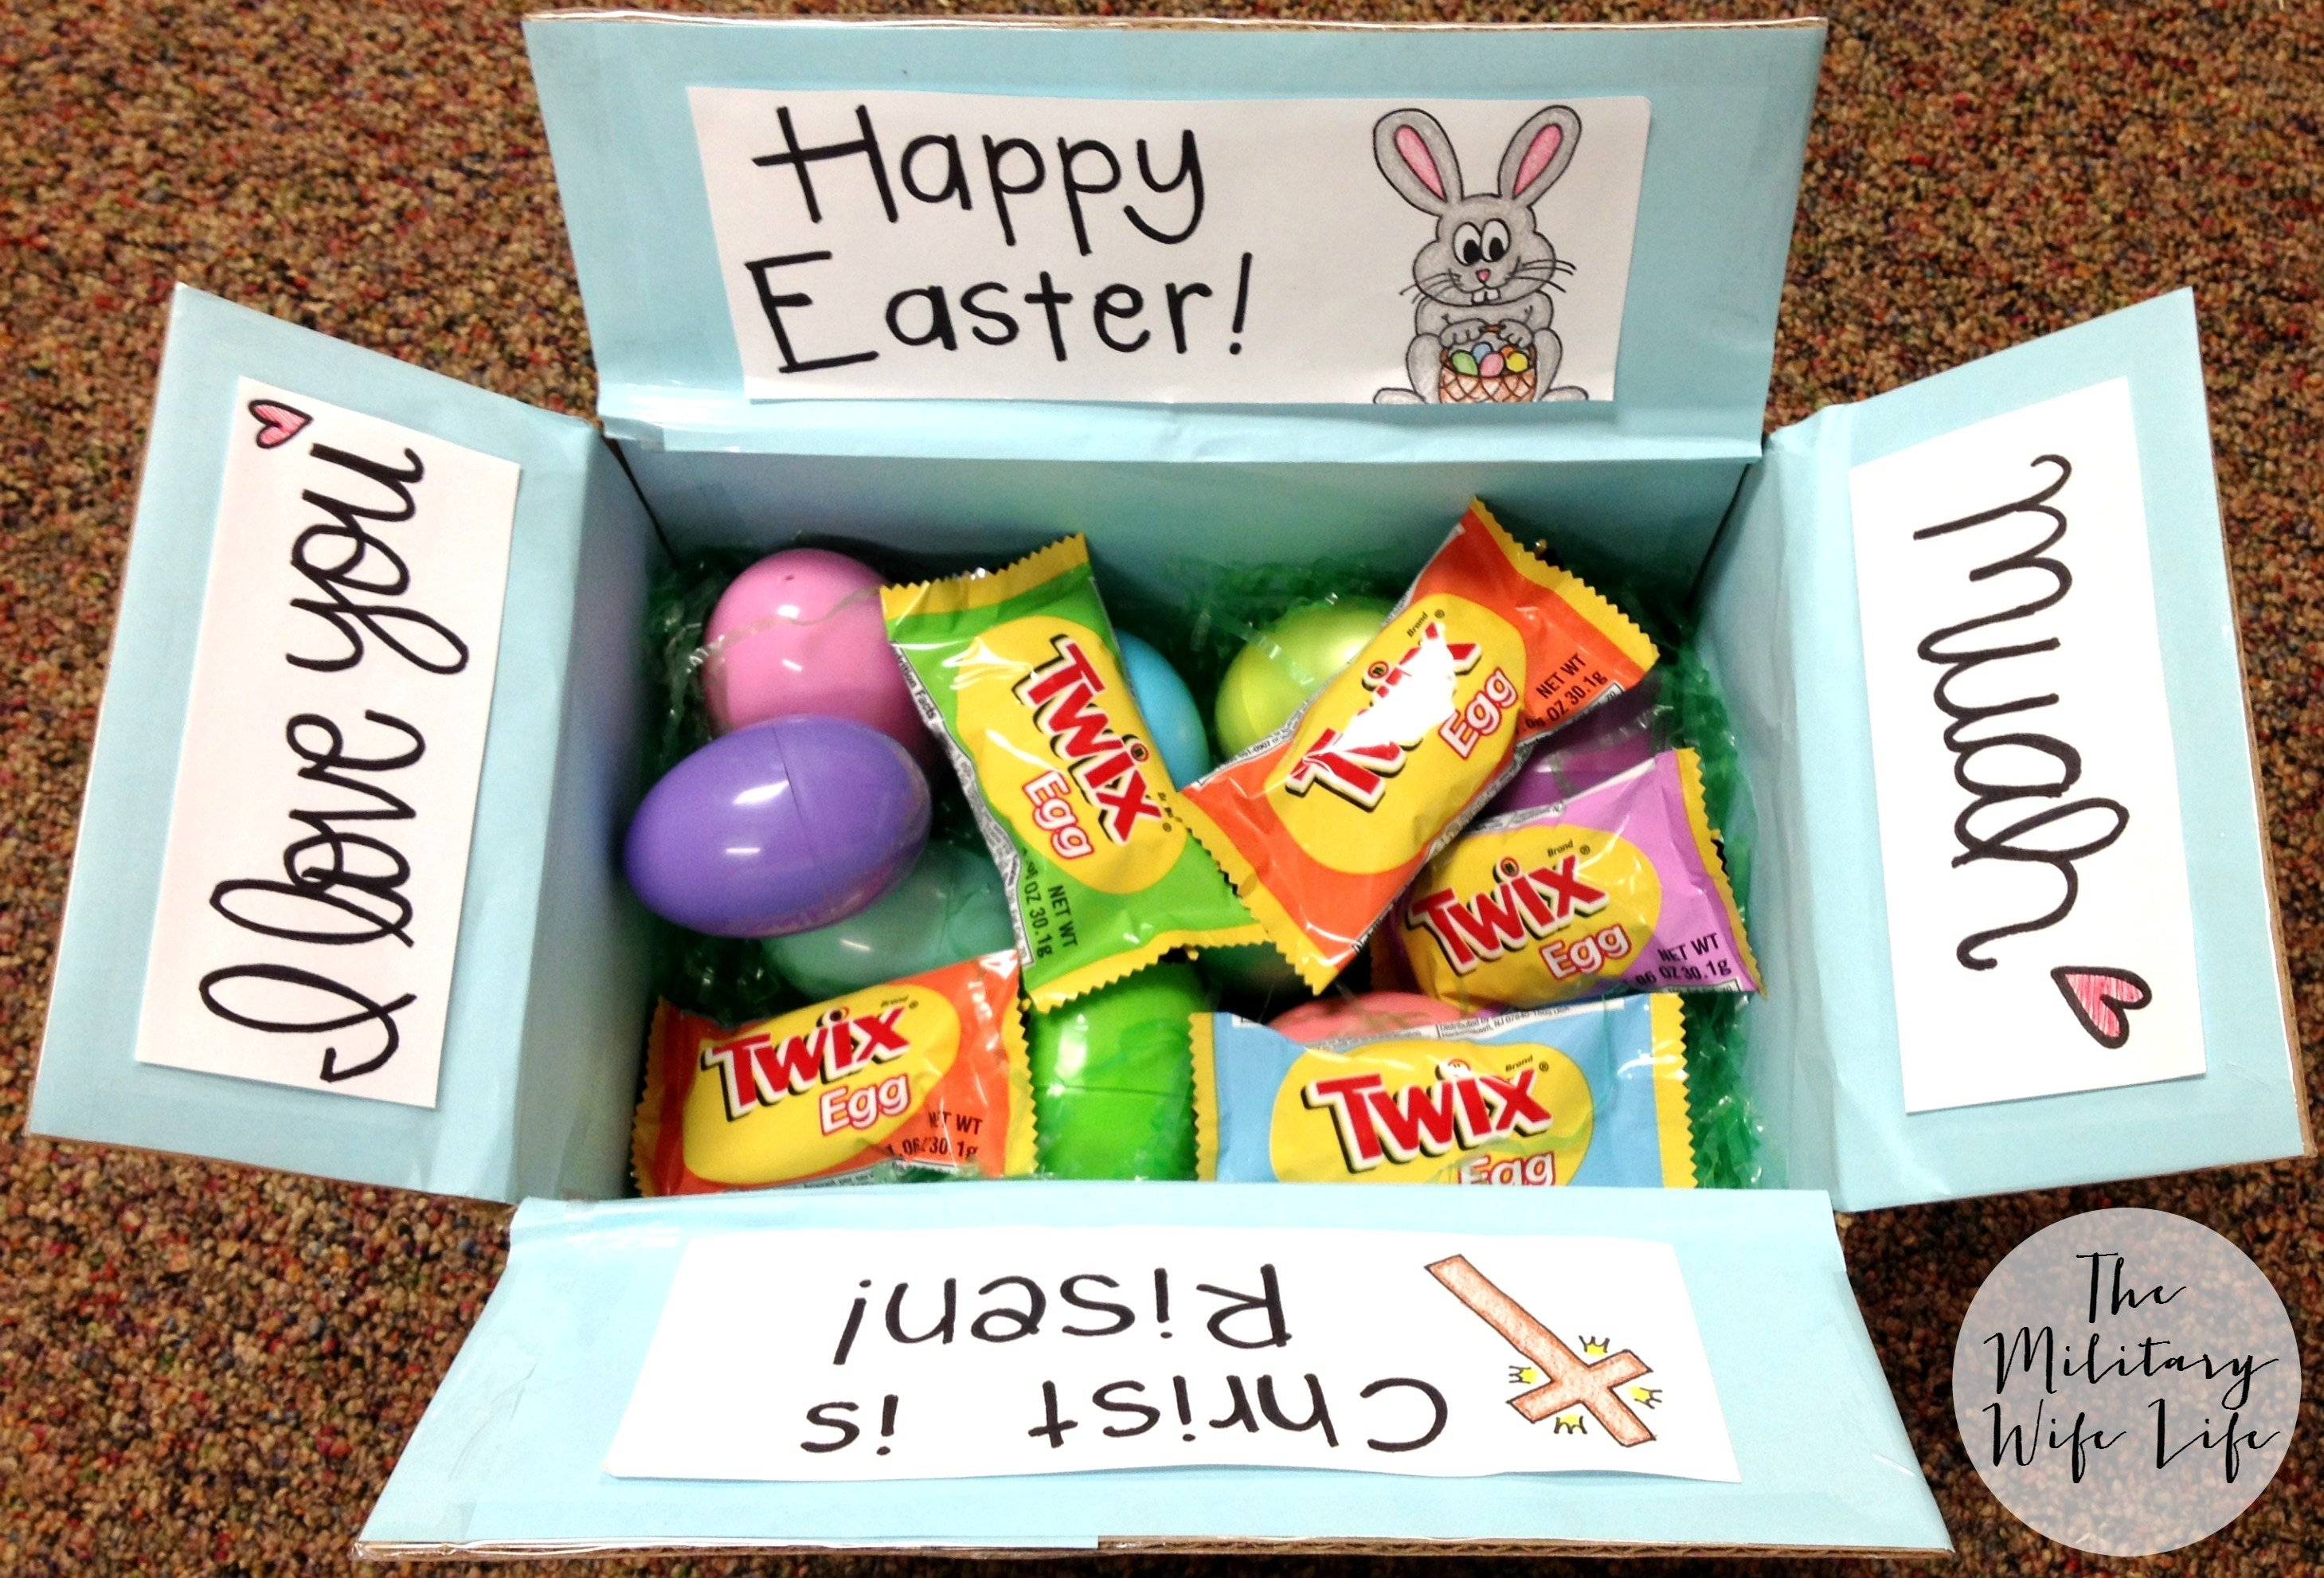 10 Wonderful Ideas For A Care Package easter care package ideas the military wife life 2021